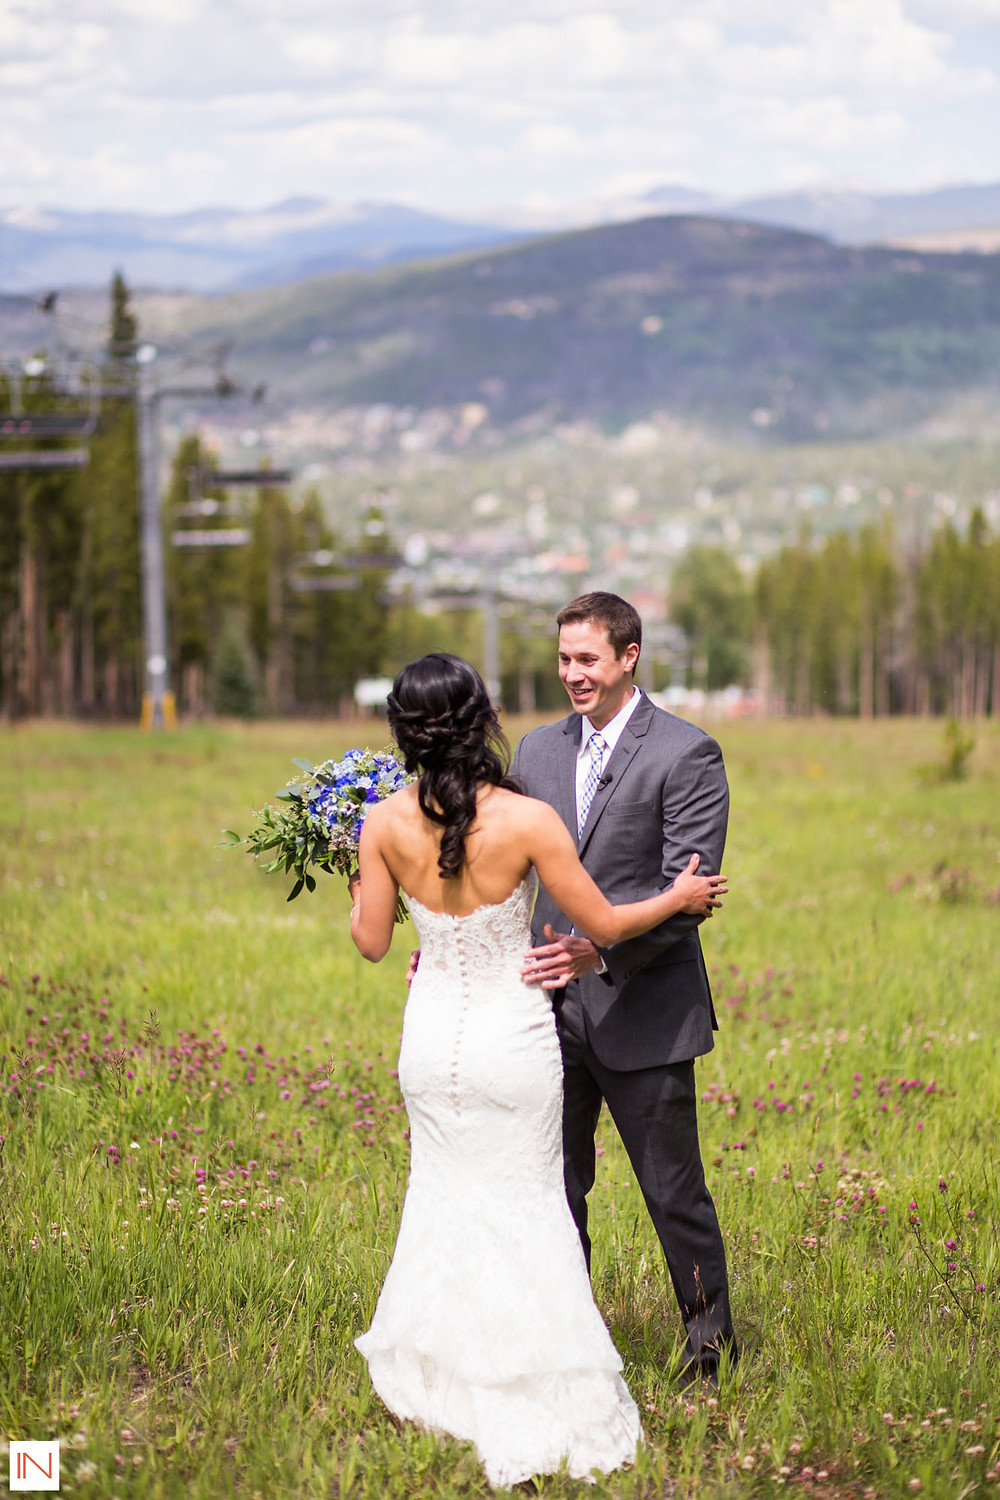 Breckenridge Wedding Planner - Breckenridge Wedding Couple First Look